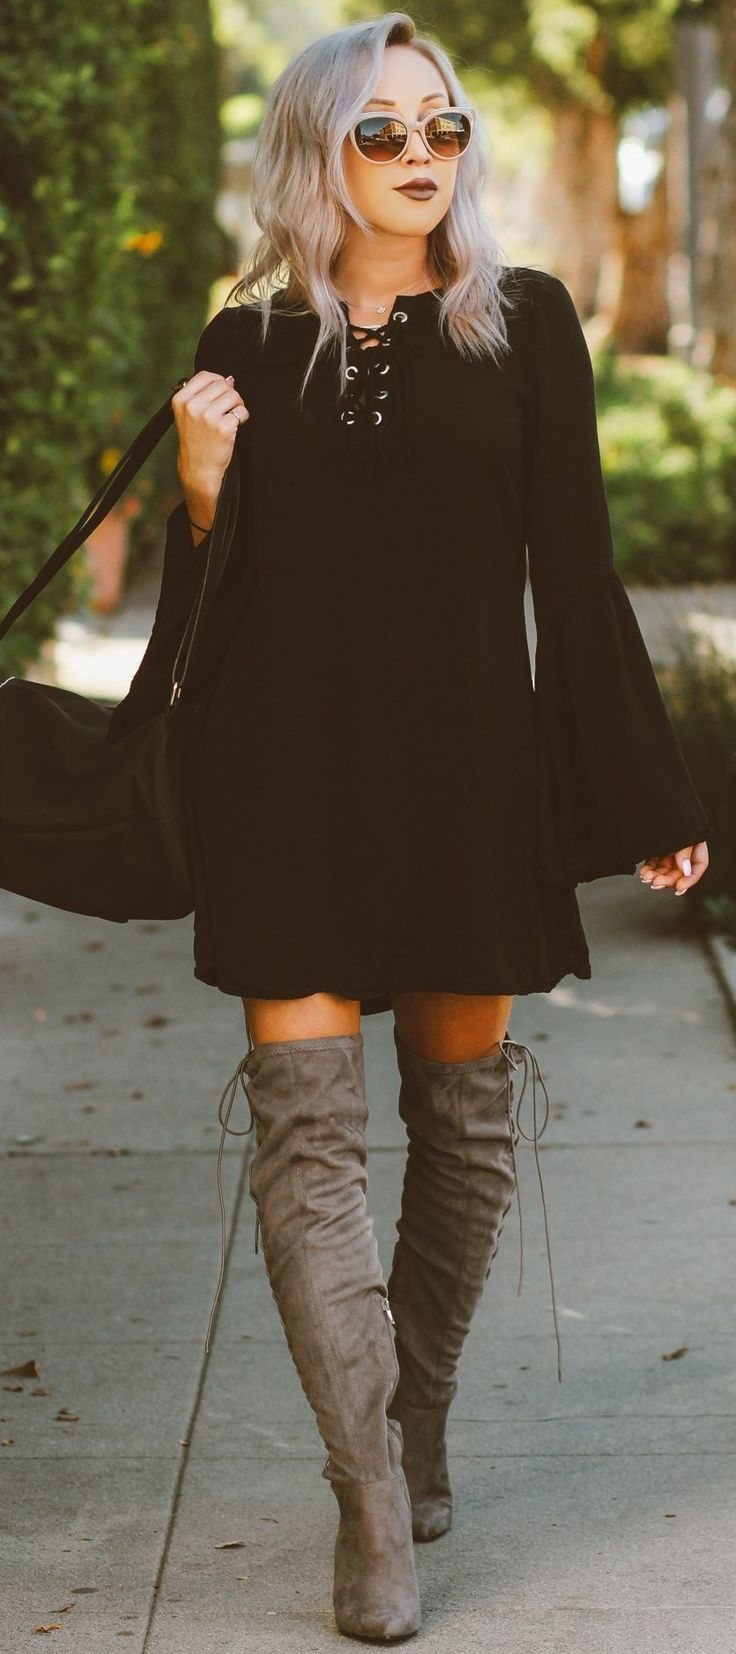 Fall Style Looks Black Bell Sleeve Dress Suede Thigh High Boots